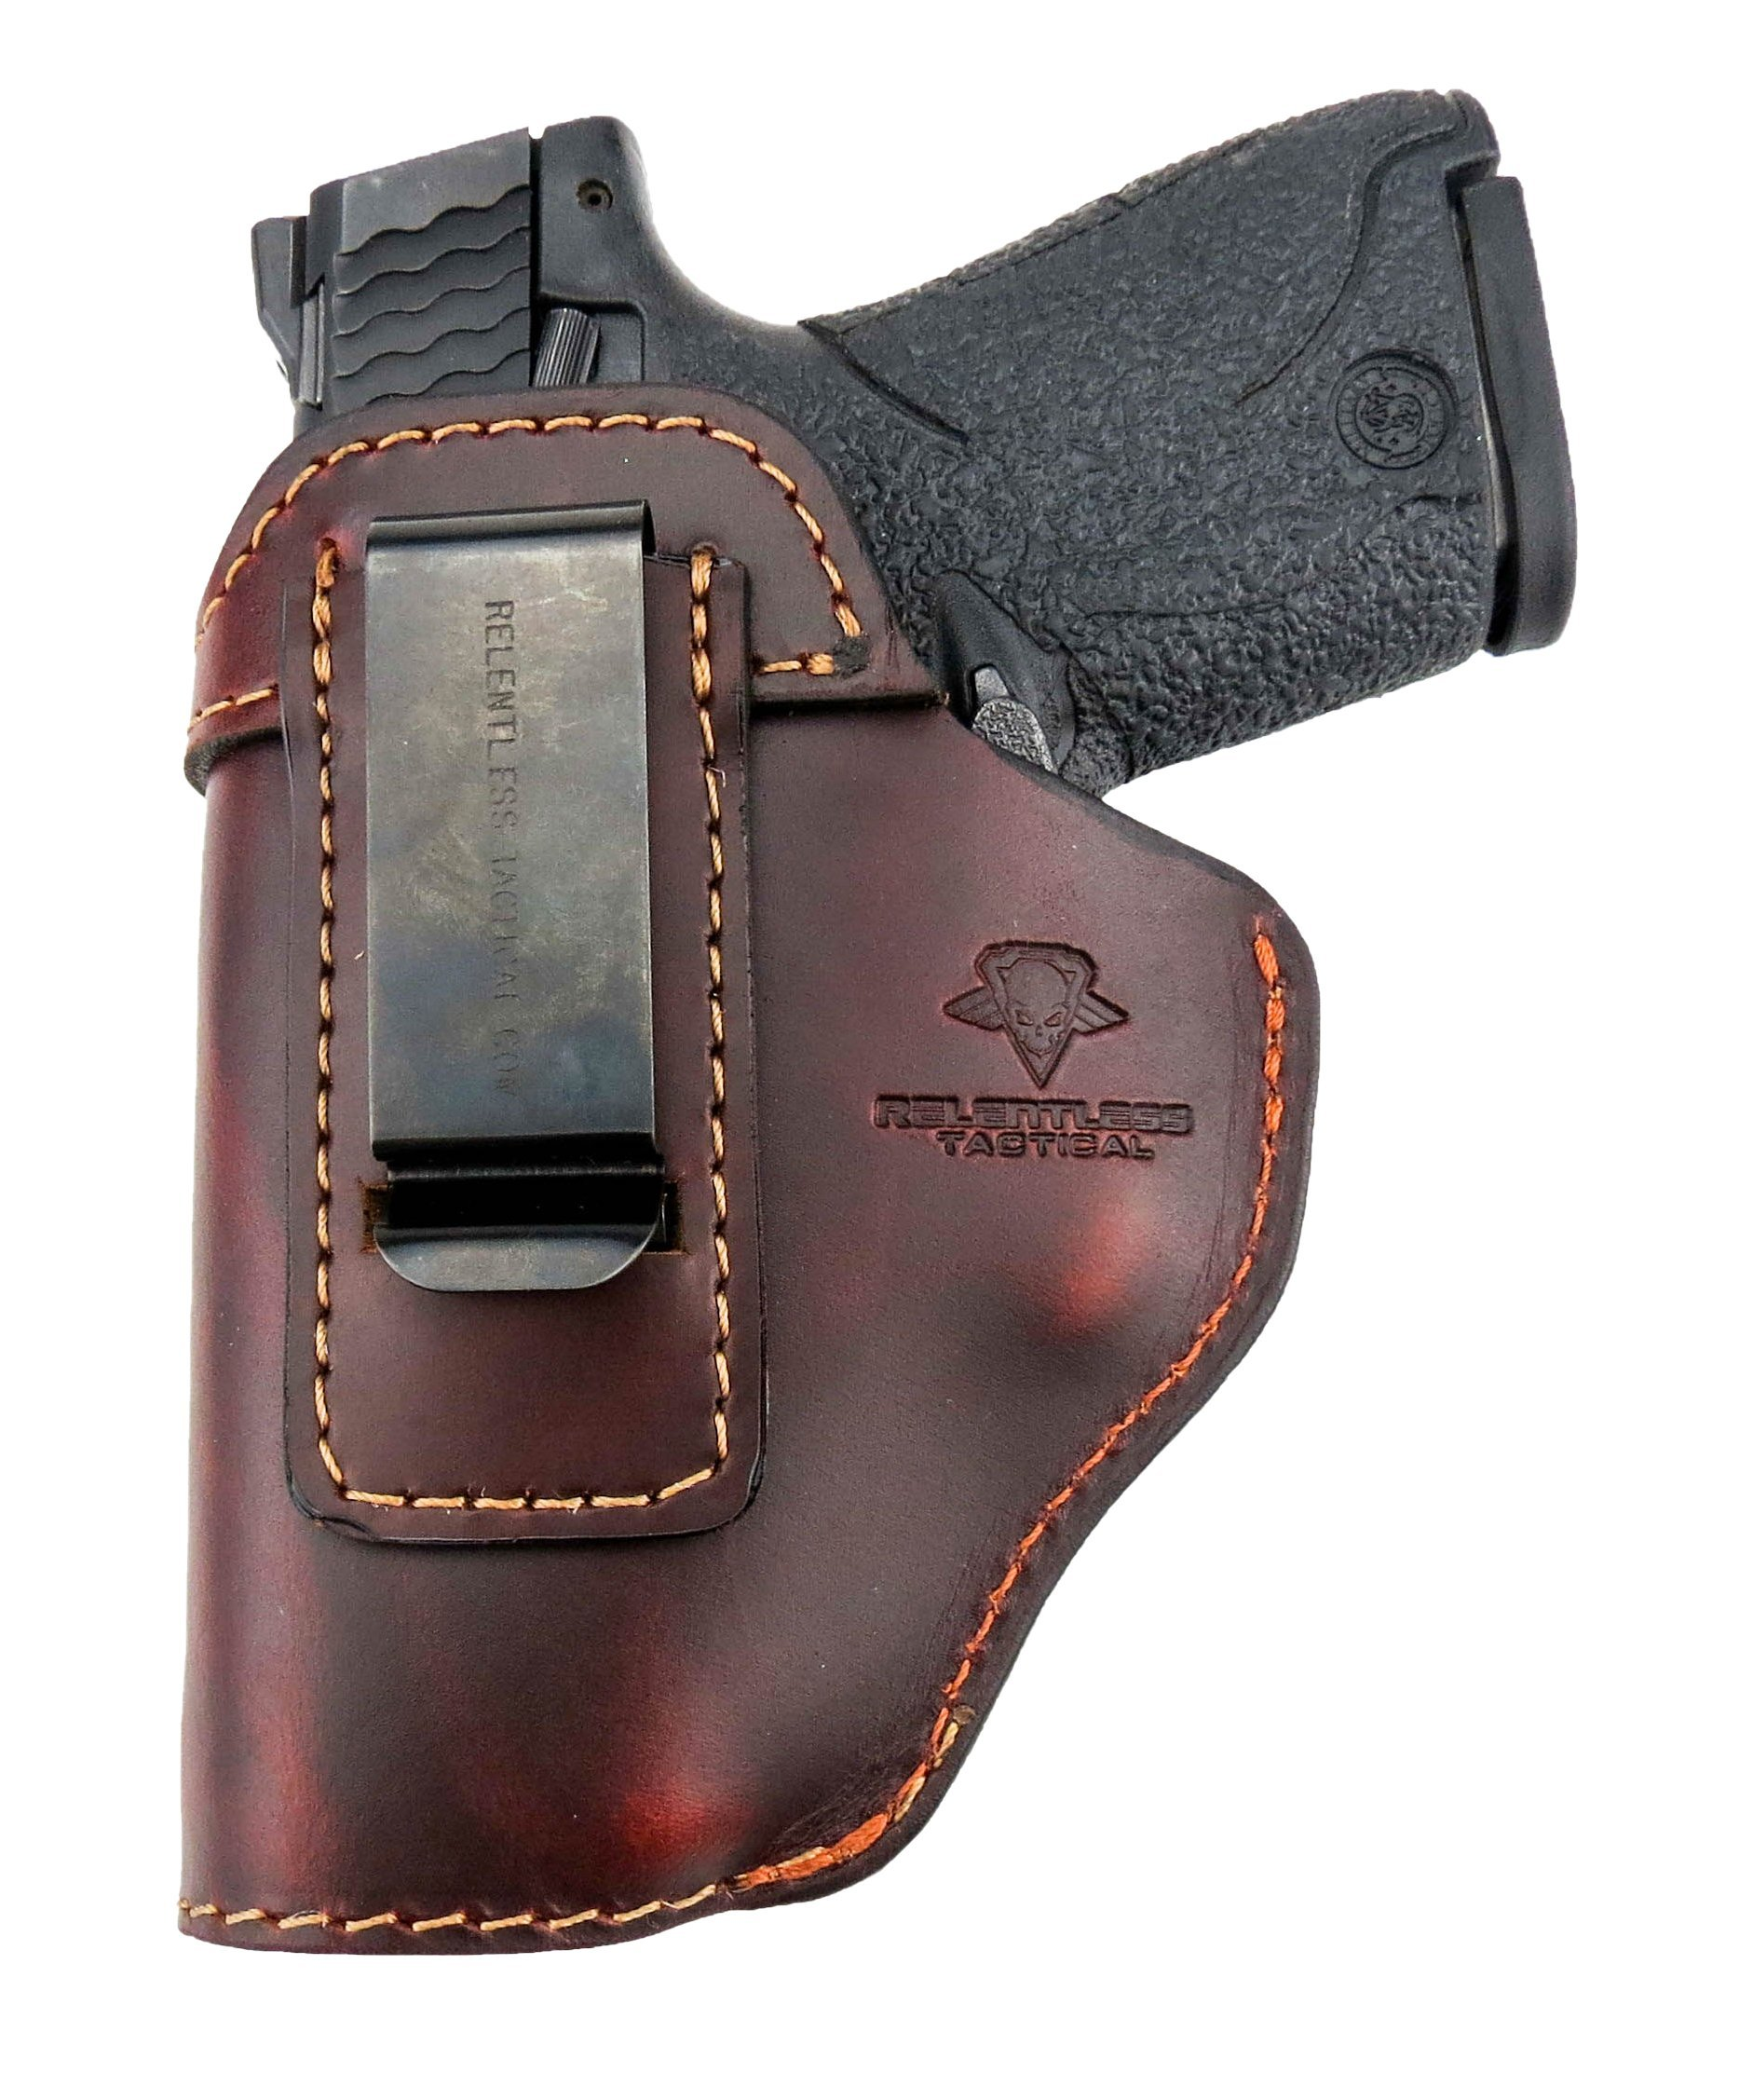 Relentless Tactical The Defender Leather IWB Holster - Made in USA - for S&W M&P Shield - Glock 17 19 22 23 32 33 / Springfield XD & XDS/Plus All Similar Sized Handguns – Brown – Left Handed by Relentless Tactical (Image #3)